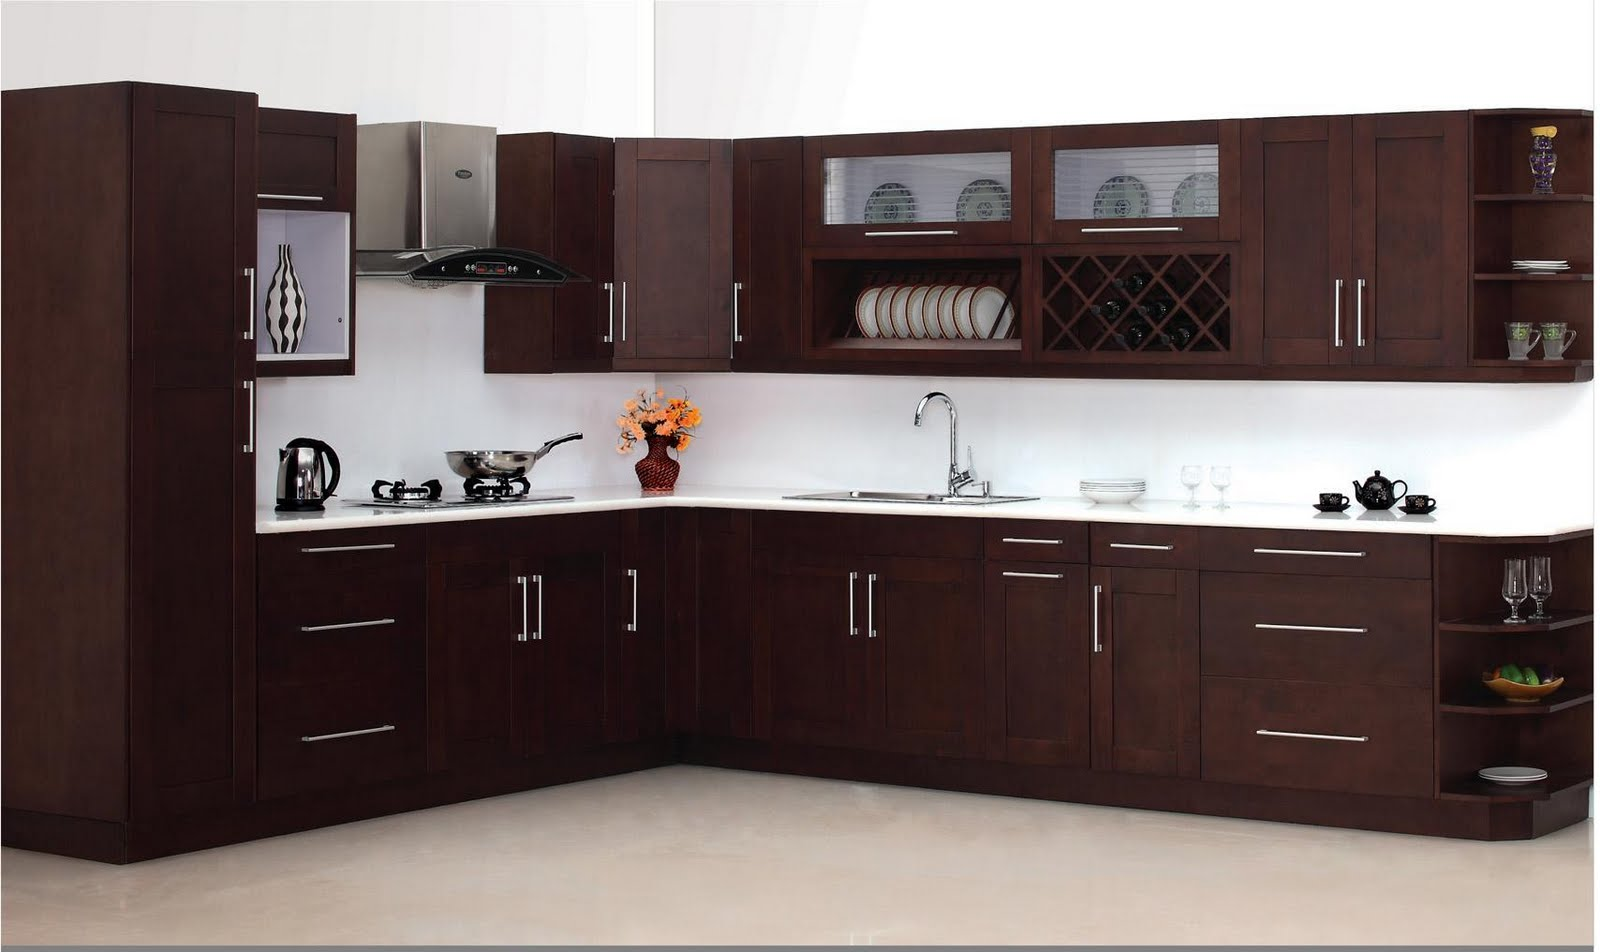 Espresso shaker kitchen cabinets images for Shaker kitchen cabinets